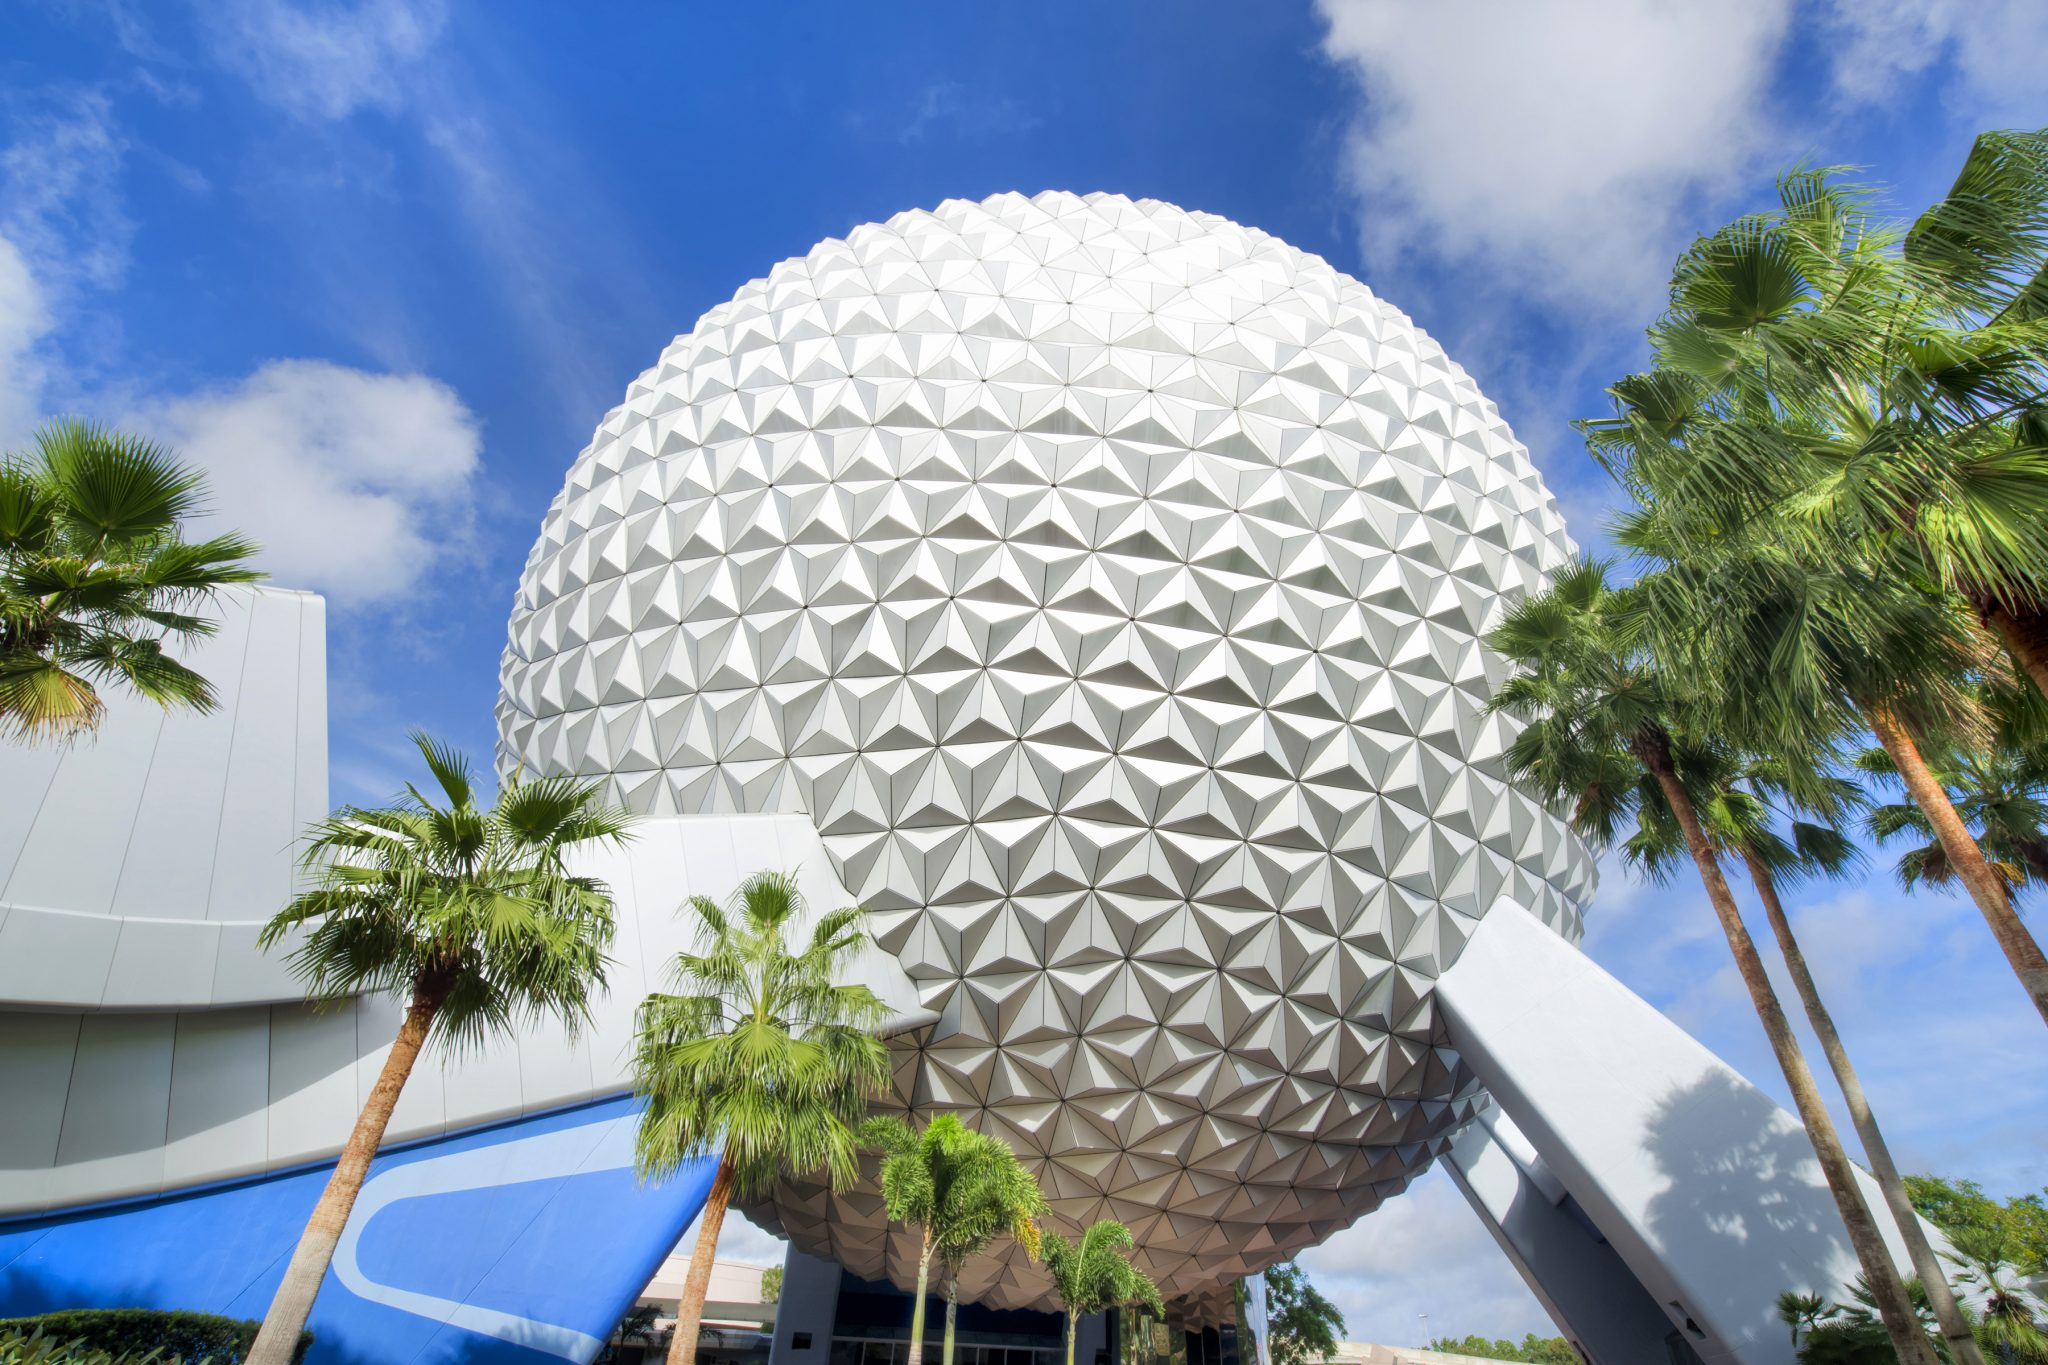 """Spaceship Earth is the visual and thematic centerpiece of Epcot at Walt Disney World Resort in Lake Buena Vista, Fla. The geodesic dome weighs 16 million pounds and the outer """"skin"""" of Spaceship Earth is made up of 11,324 aluminum and plastic-alloy triangles. The attraction inside Spaceship Earth presented by Siemens includes a time-travel adventure through the history of communication, showing how the spirit of innovation has moved people from the caves to the cosmos. (Gene Duncan, photographer)"""